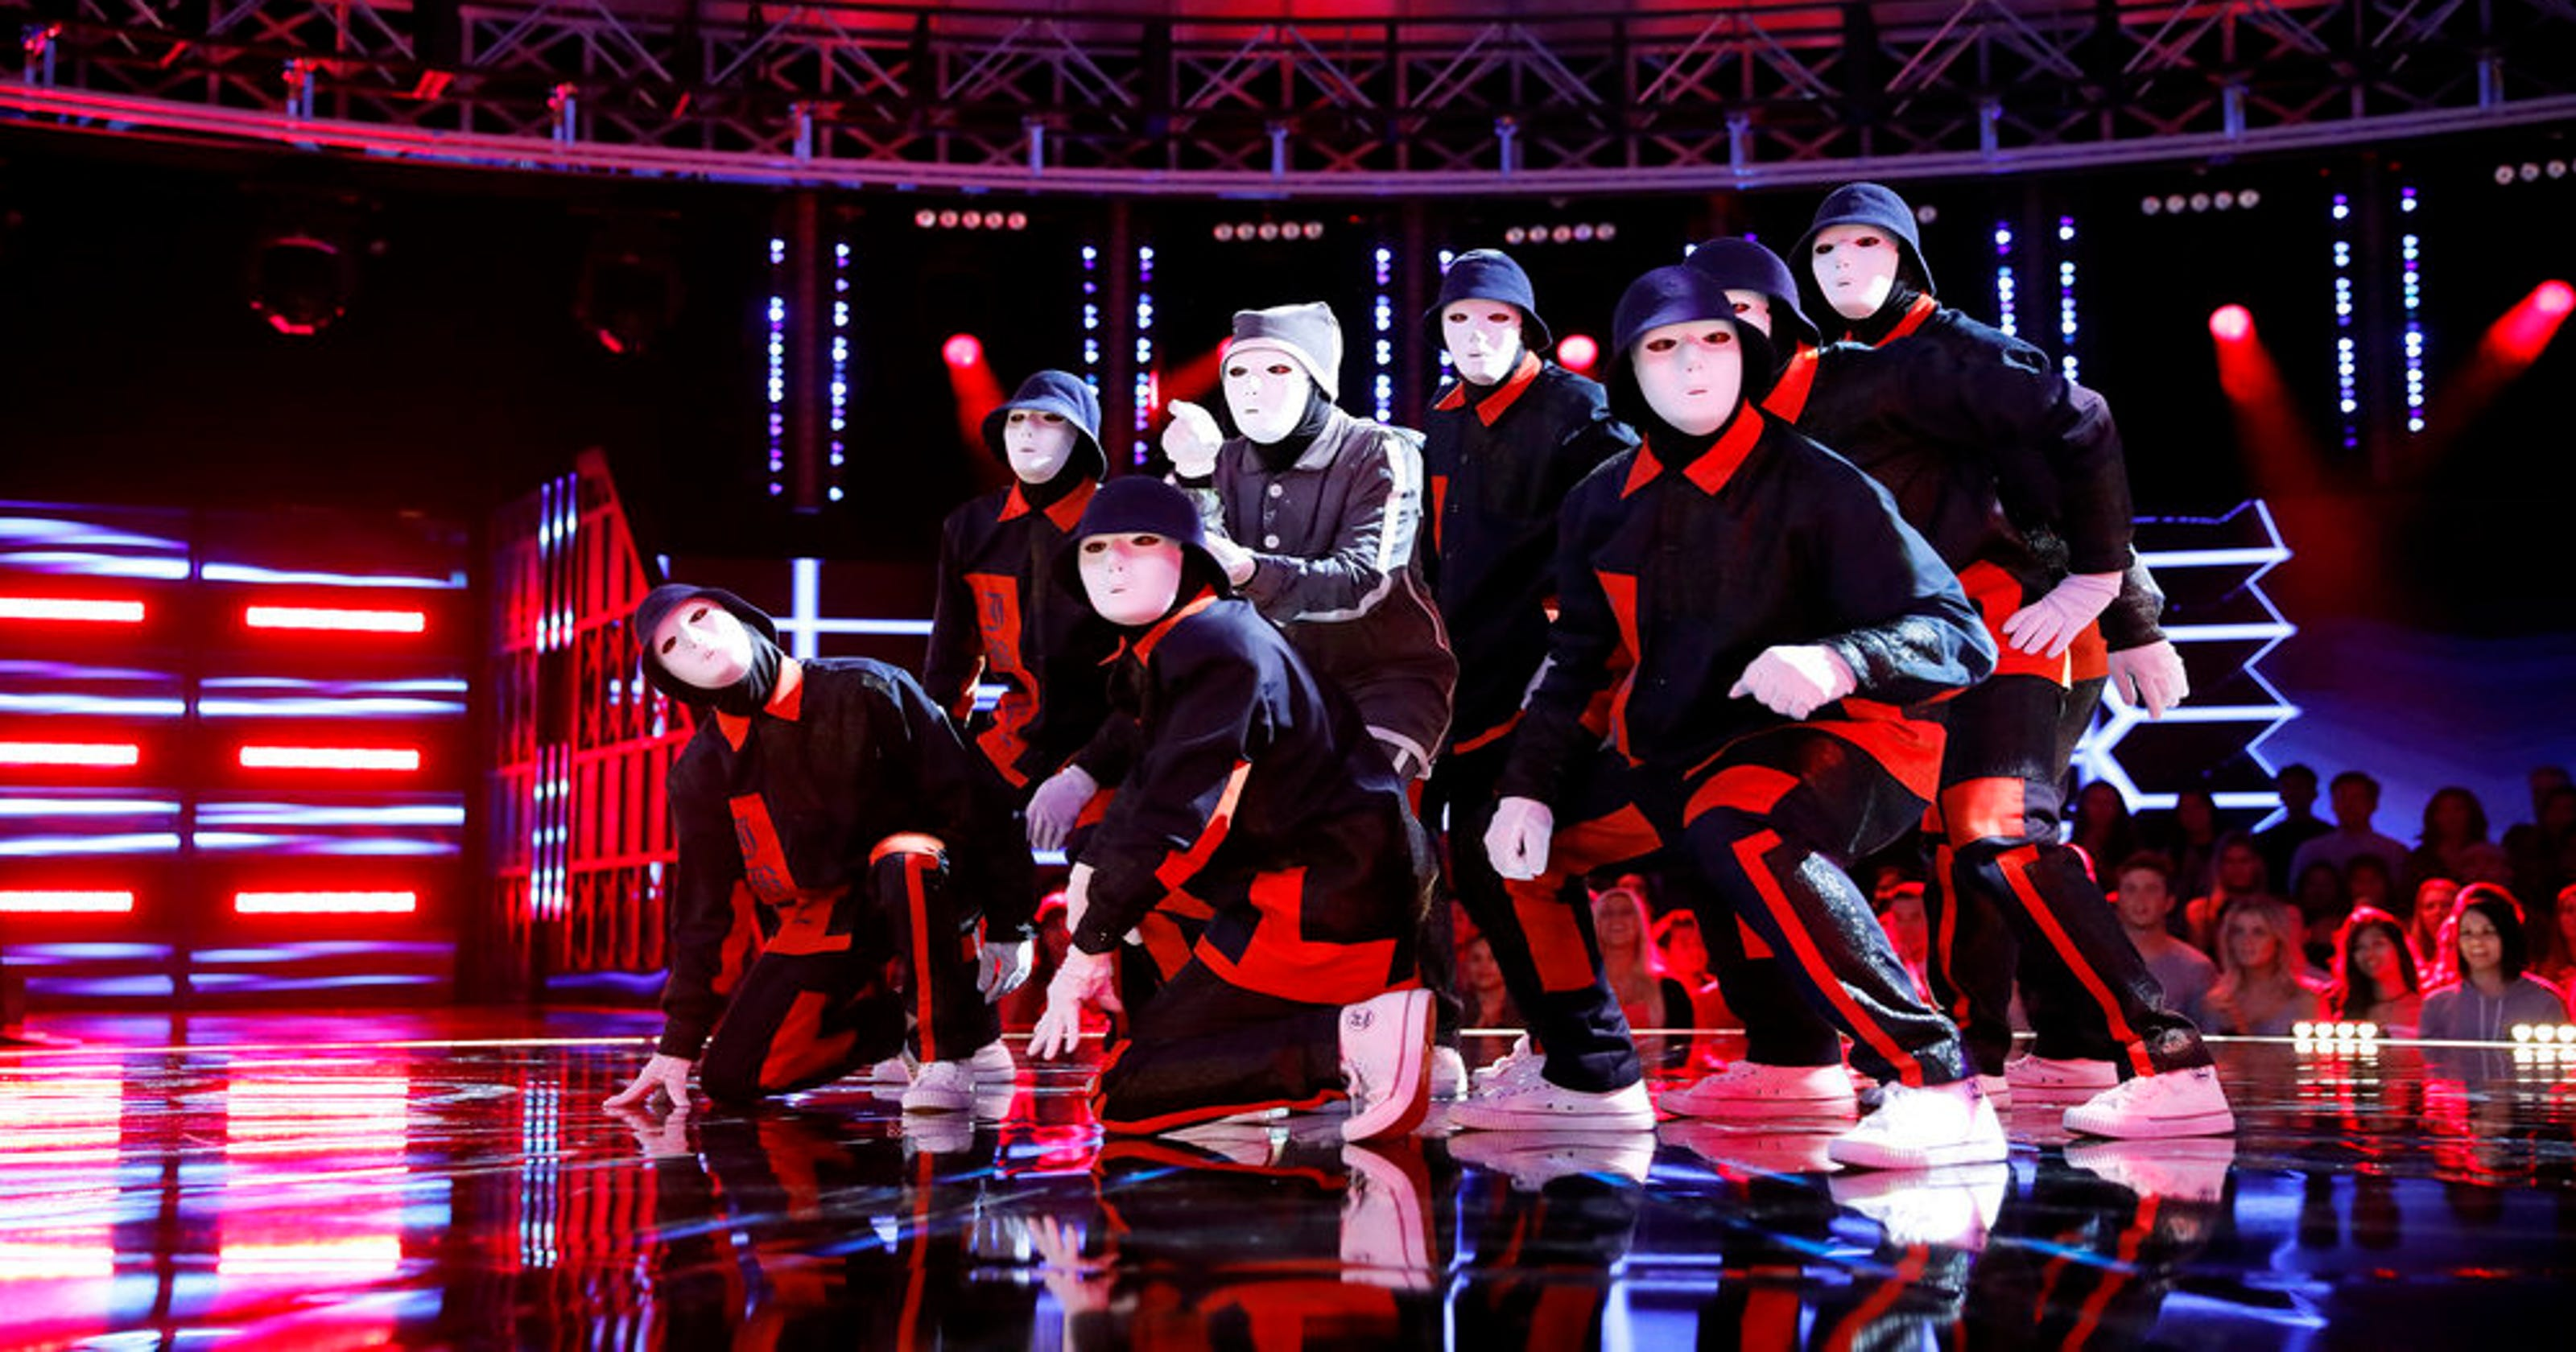 World of Dance': Jabbawockeez are eliminated after killing it